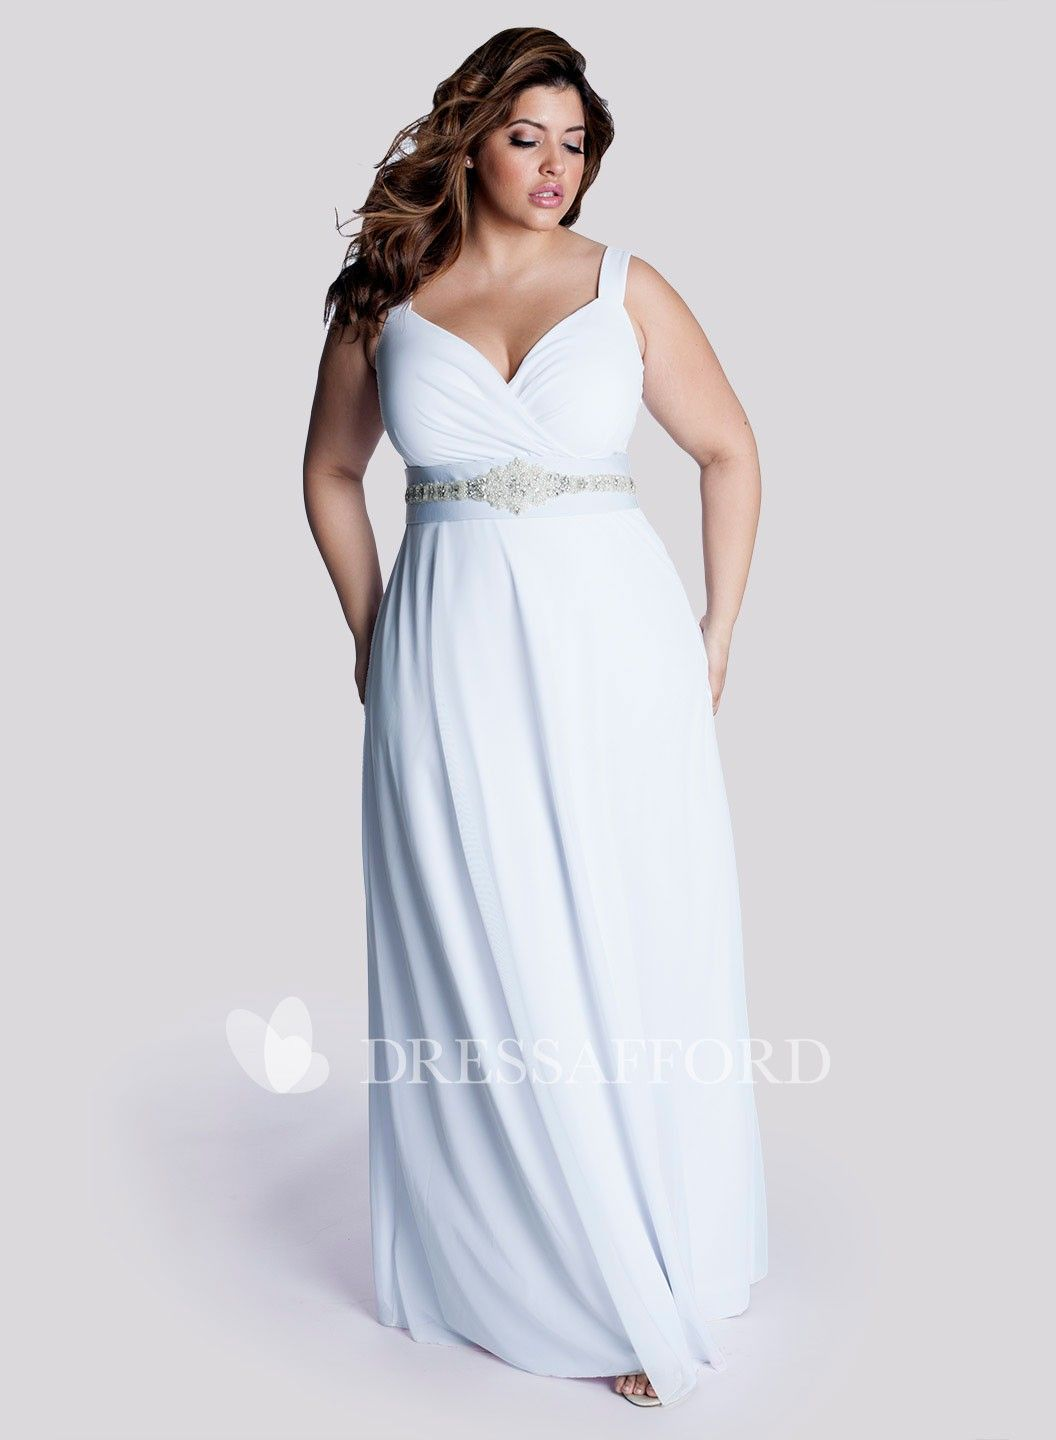 Casual Strapped Chiffon Dress With Ruching And Jeweled Waist Dress Afford In 2020 Wedding Dresses Plus Size Plus Size Wedding Gowns Trendy Wedding Dresses